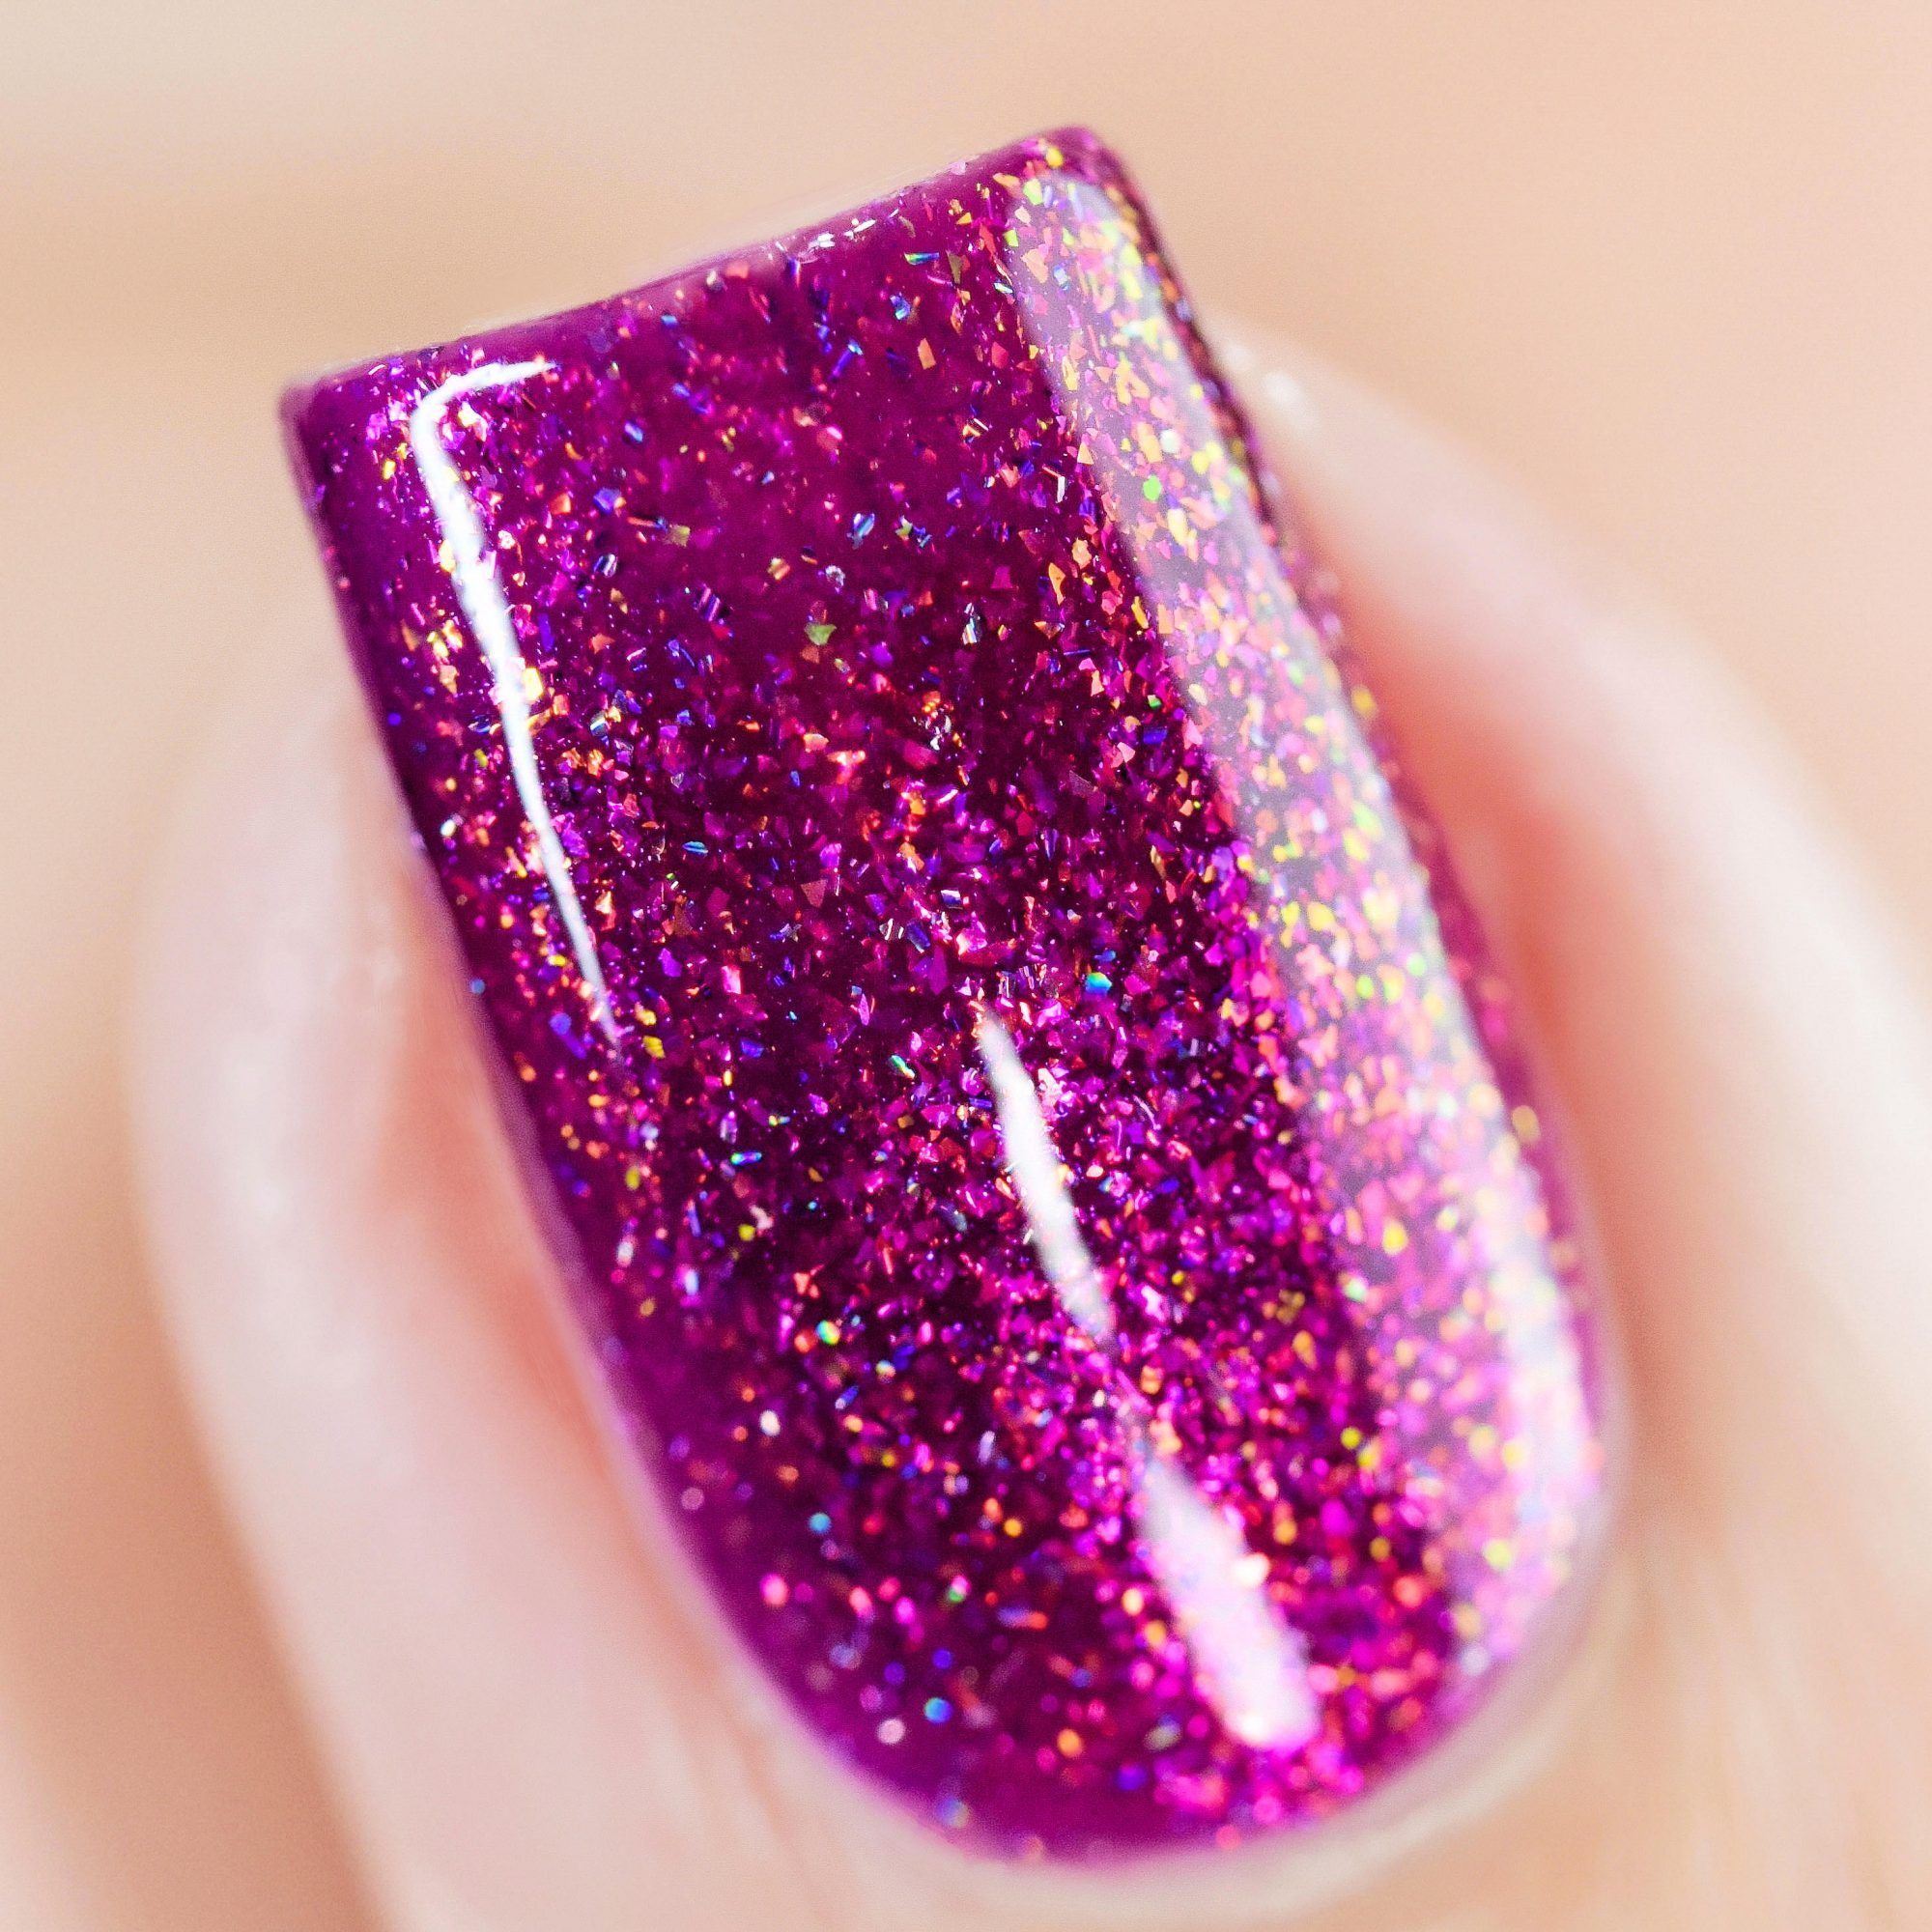 Rush Hour - Vivid Berry Holographic Nail Polish by